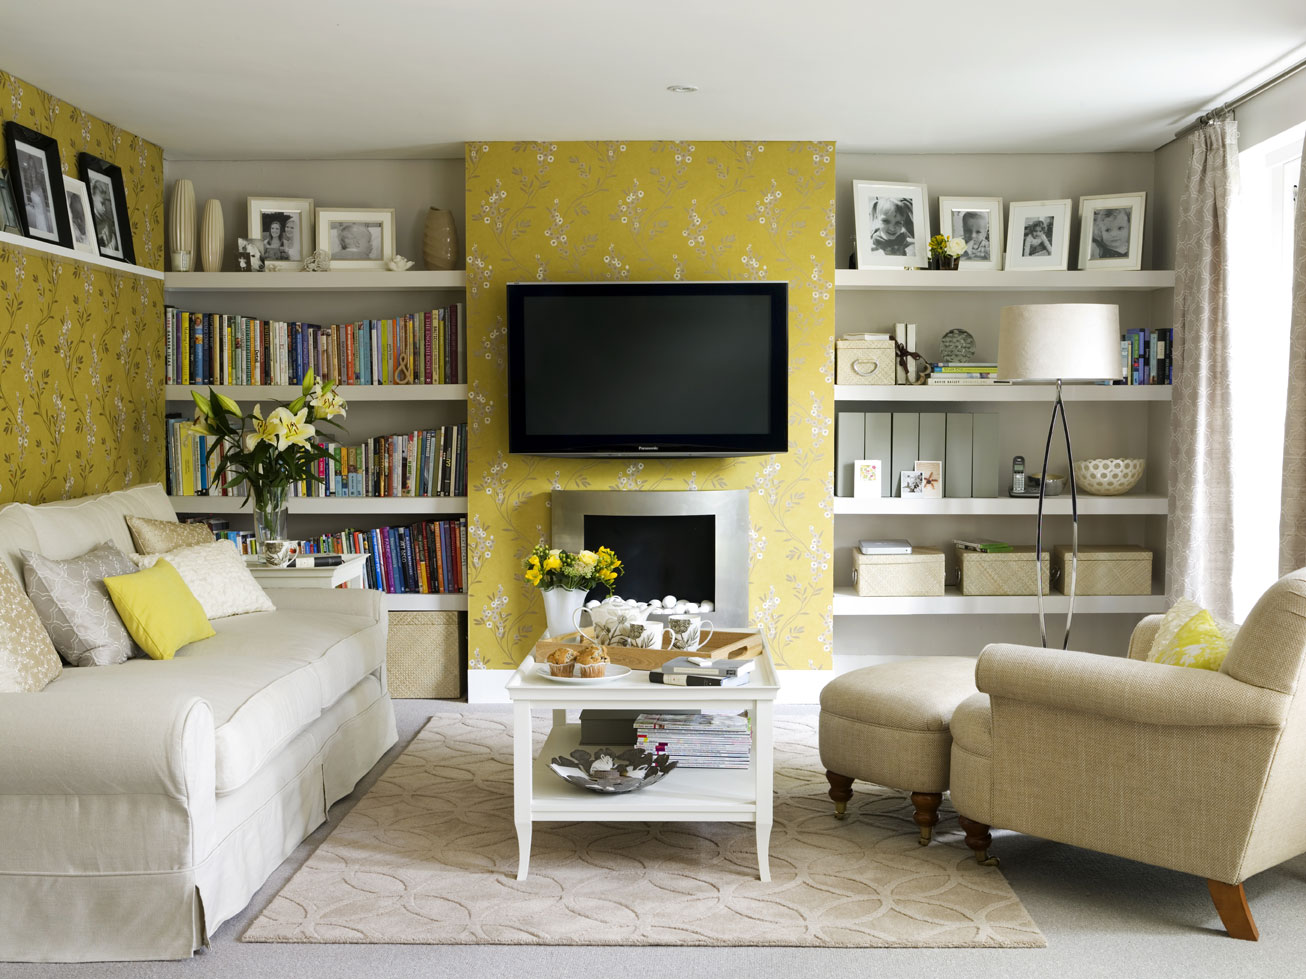 Ideas For Living Room Walls yellow room interior inspiration: 55+ rooms for your viewing pleasure